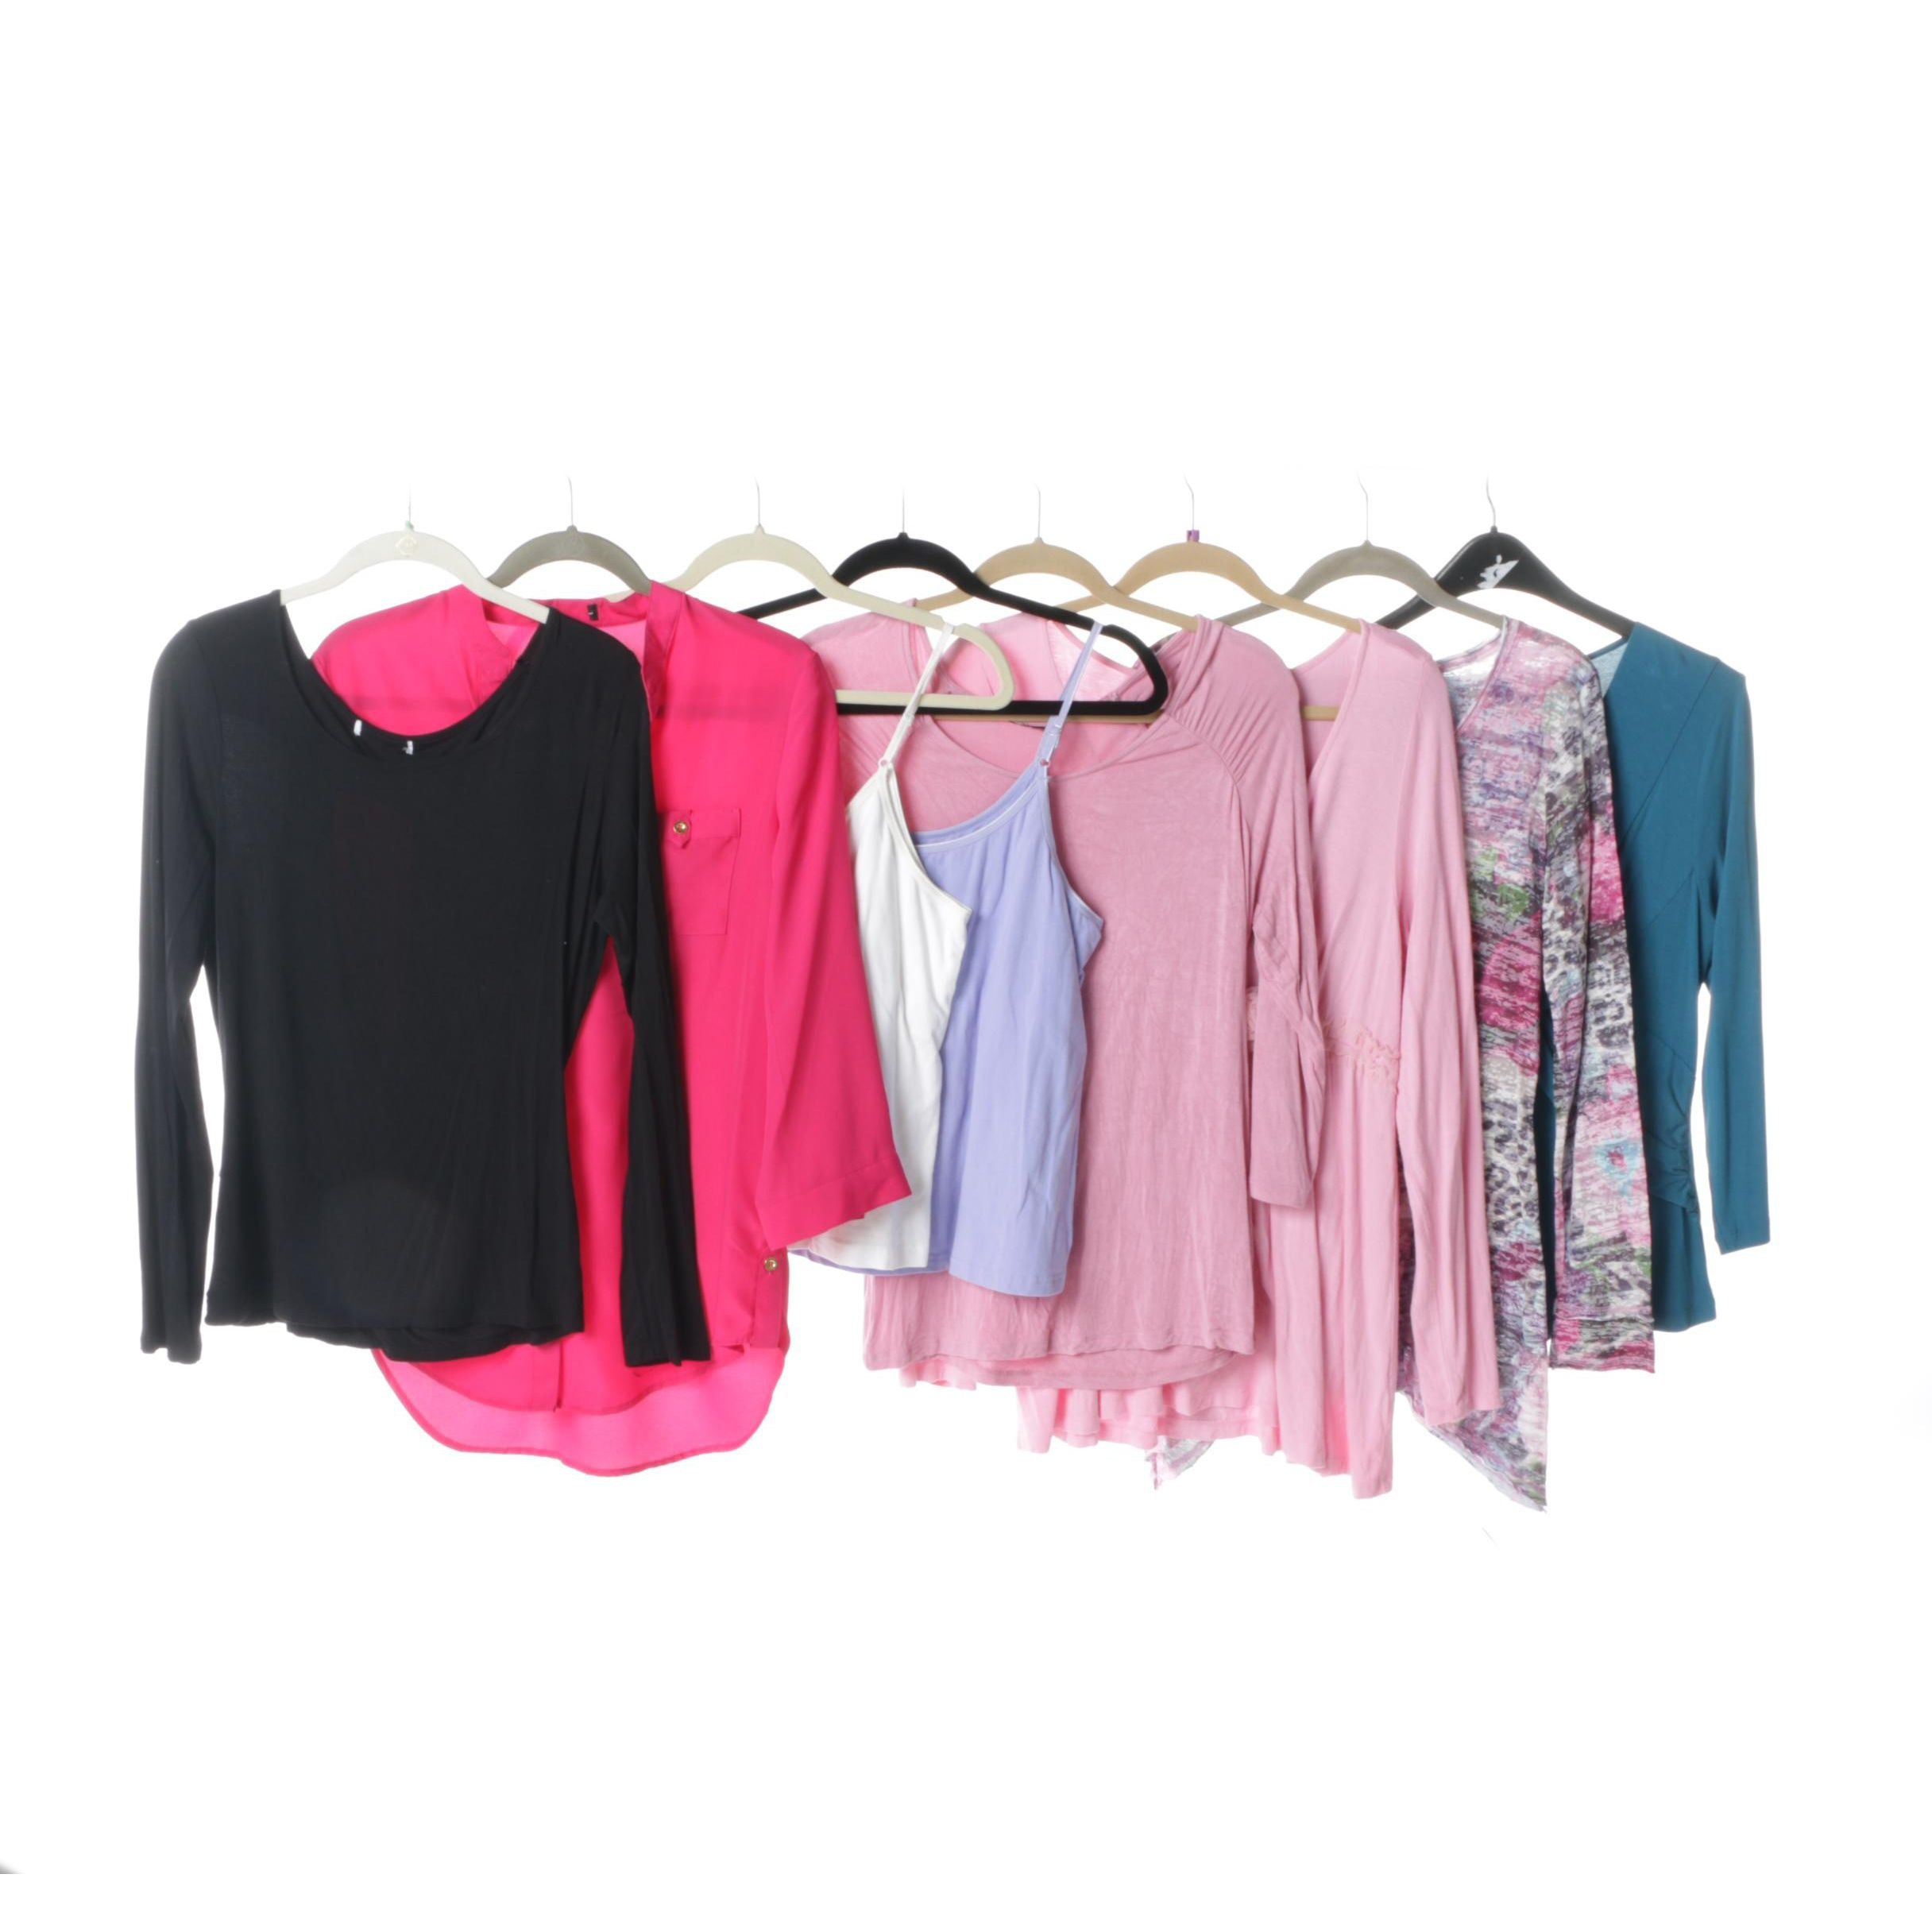 Women's Shirts and Camisoles Including Cynthia Rowley